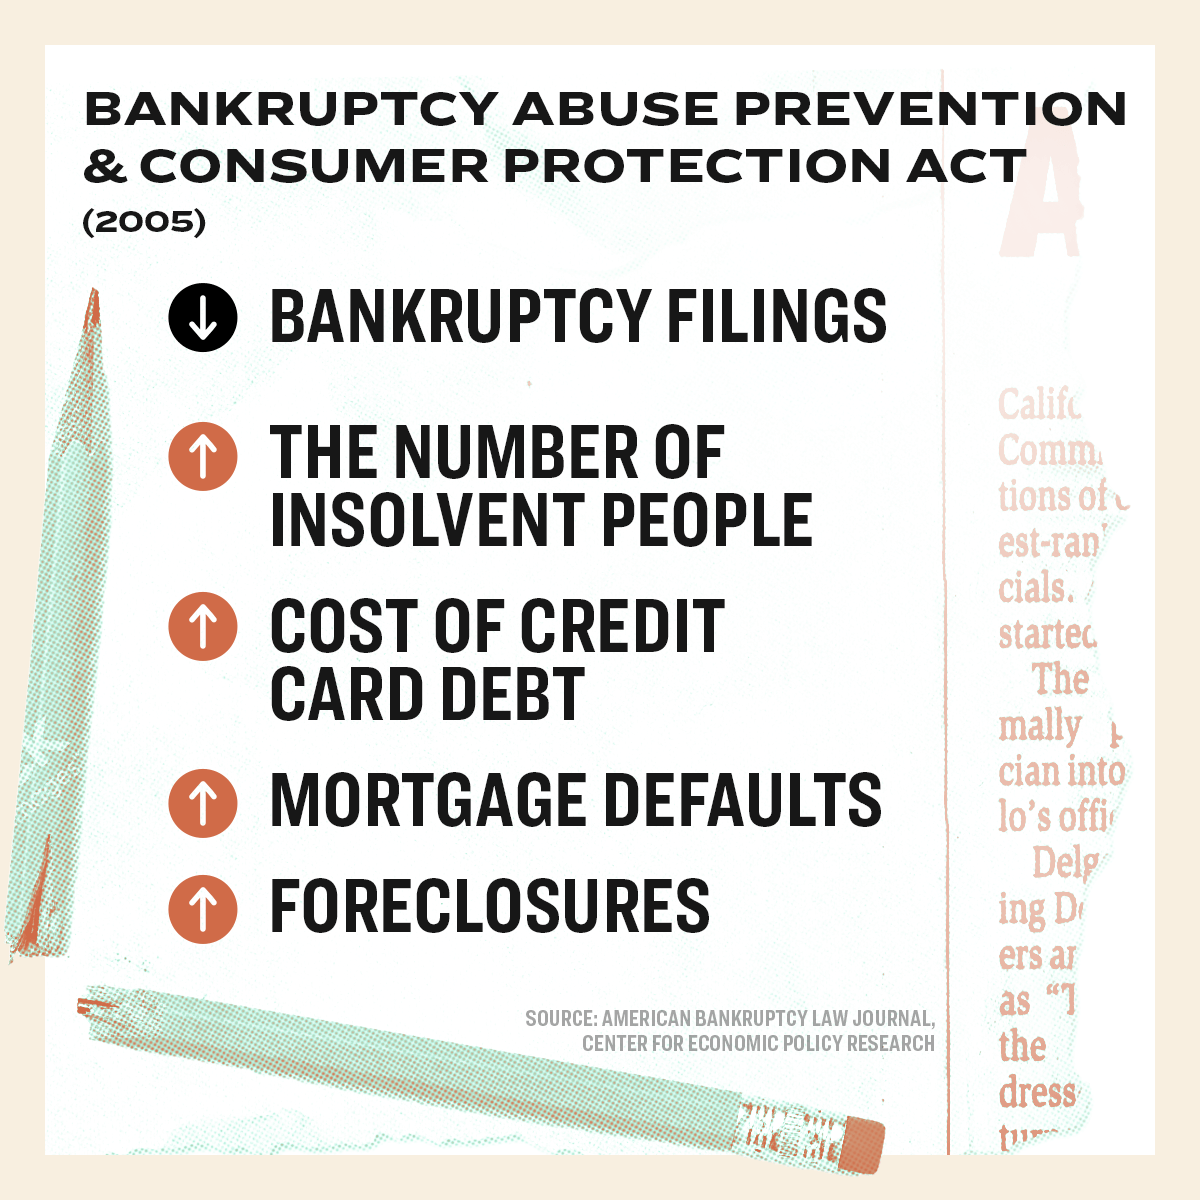 Bankruptcy Abuse Prevention and Consumer Protection Act (2005)  Bankruptcy filings are down  The number of insolvent people are up Cost of credit card debt are up Mortgage defaults are up Foreclosures are up  Source: American Bankruptcy Law Journal, Center for Economic Policy Research